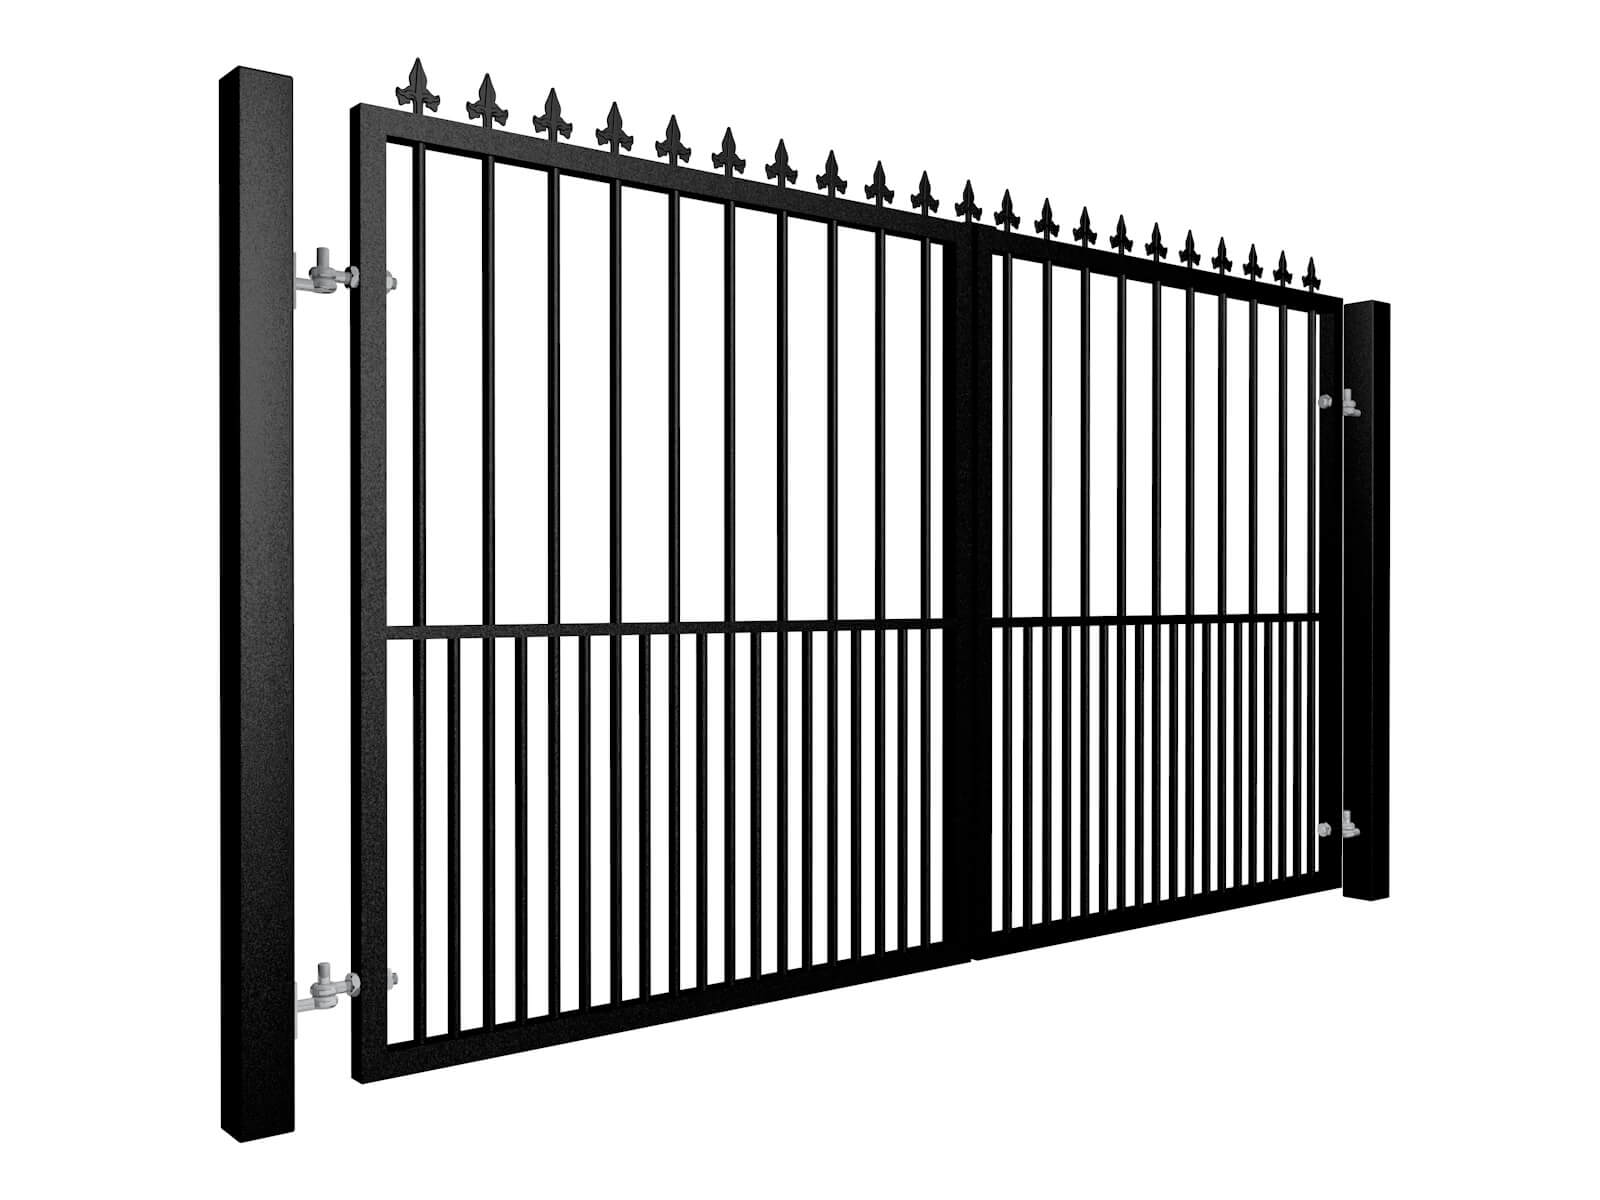 metal swinging gate with dog-bars and top finials